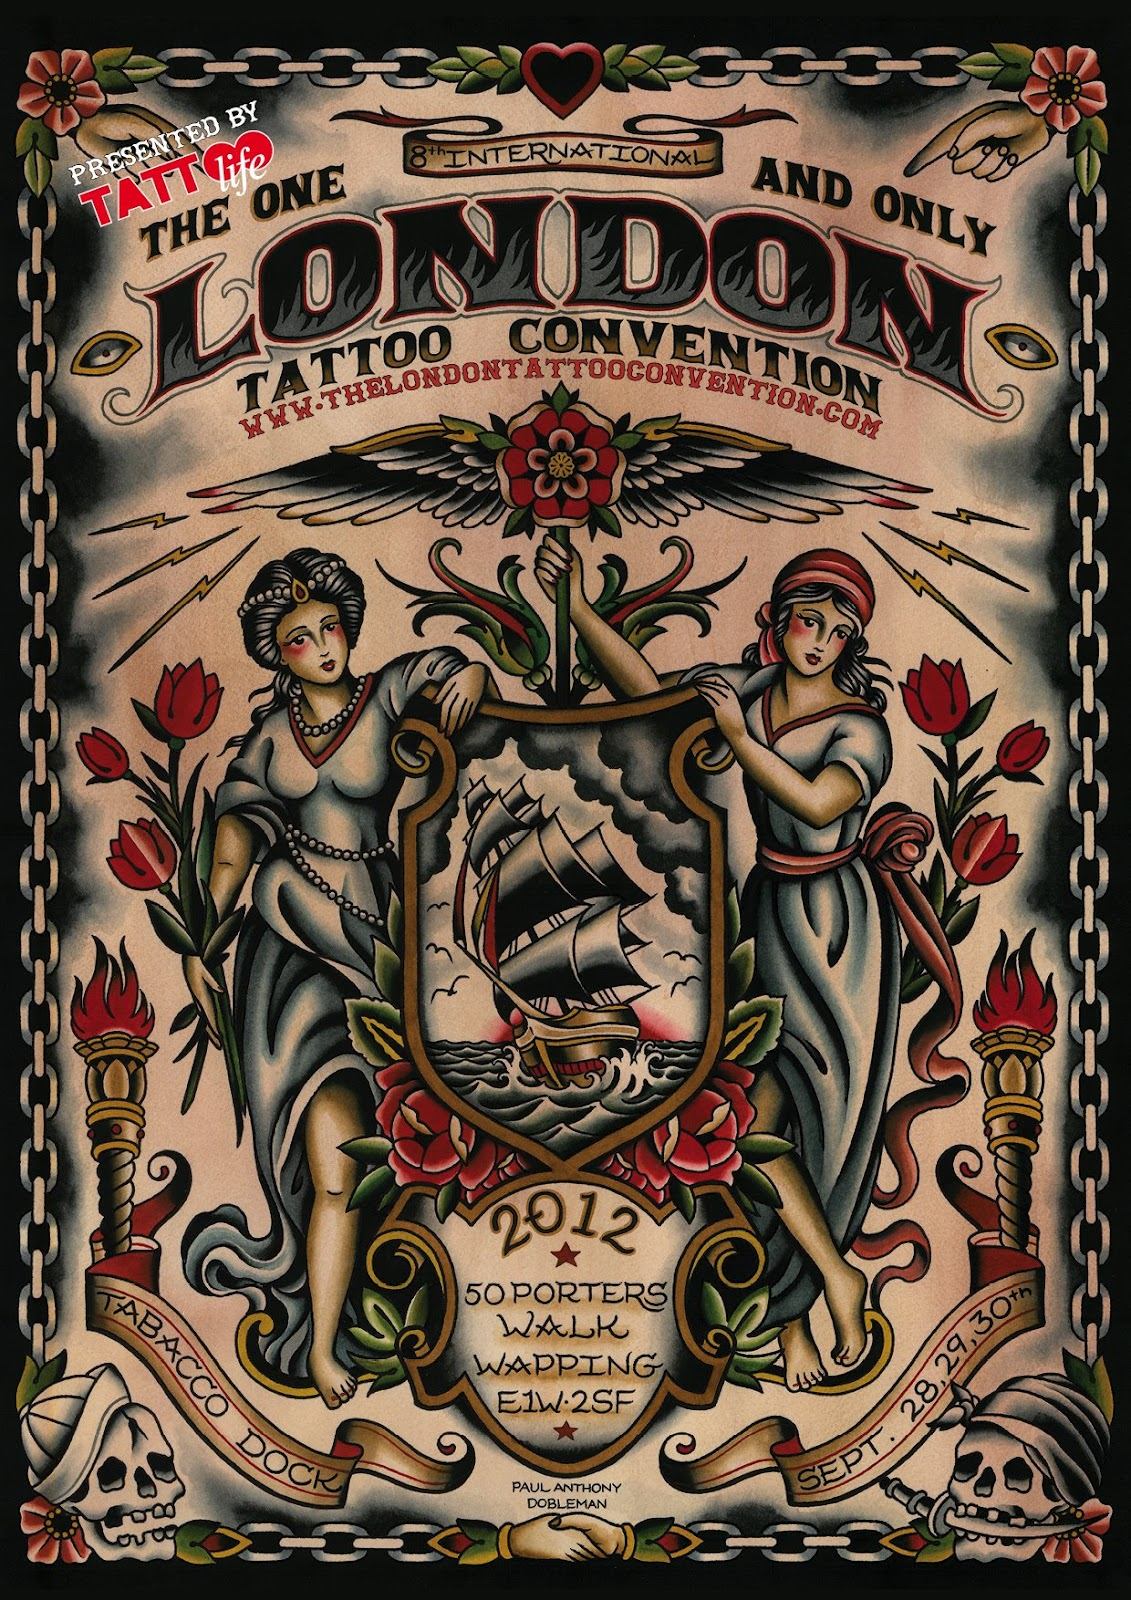 Little miss delicious london tattoo convention 2012 for Tattoo shops in london